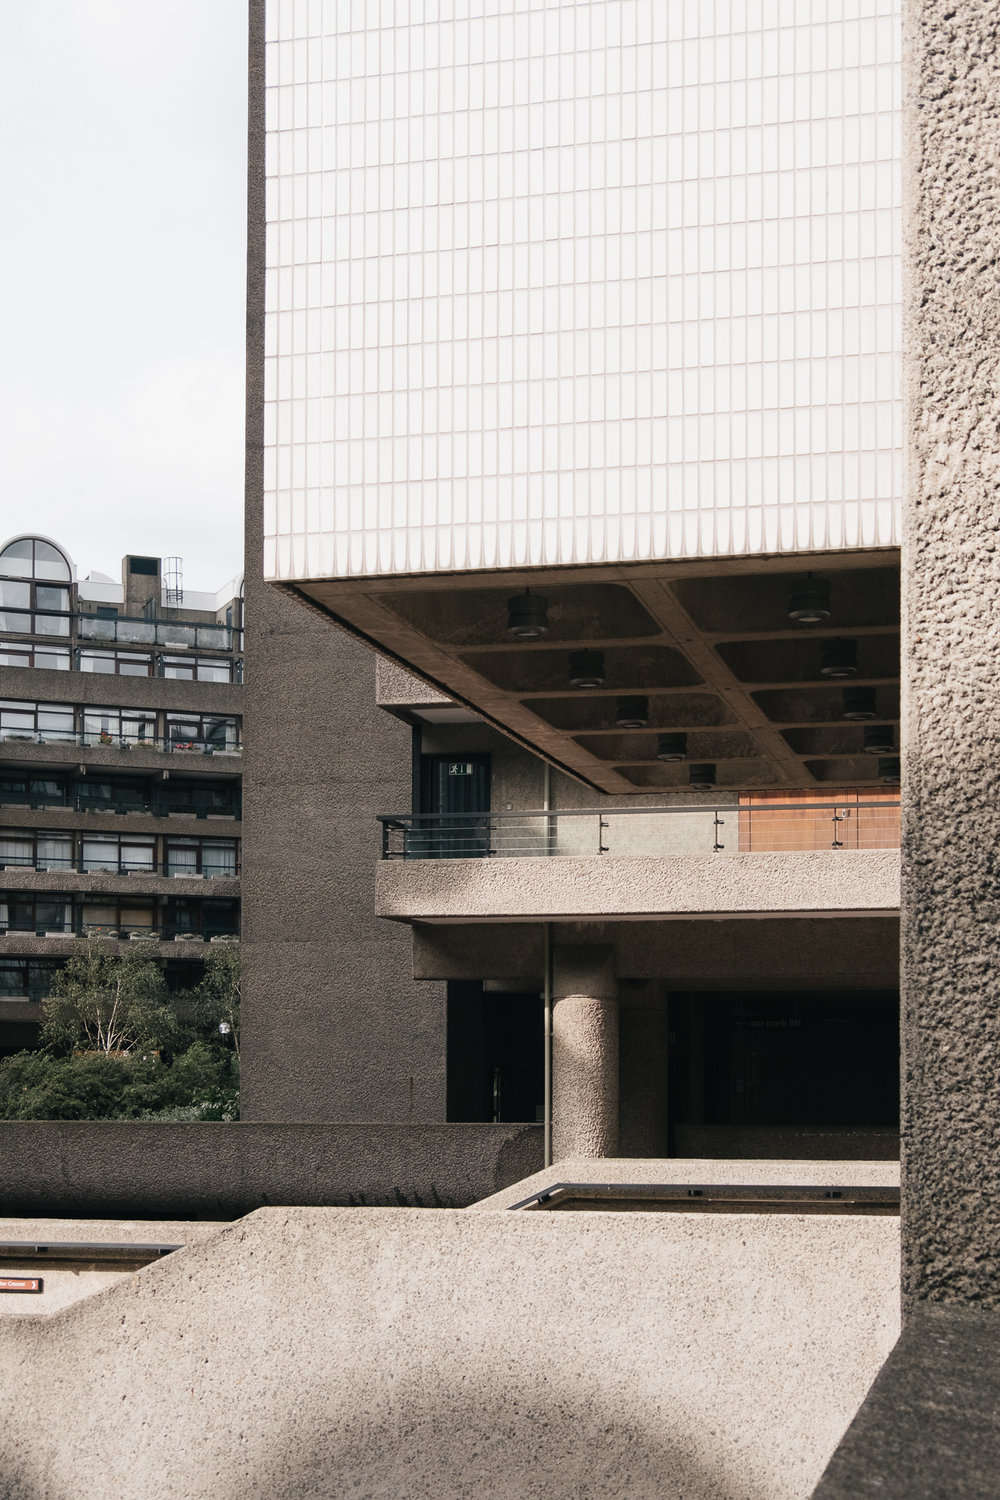 On a sunny day Barbican is especially captivating